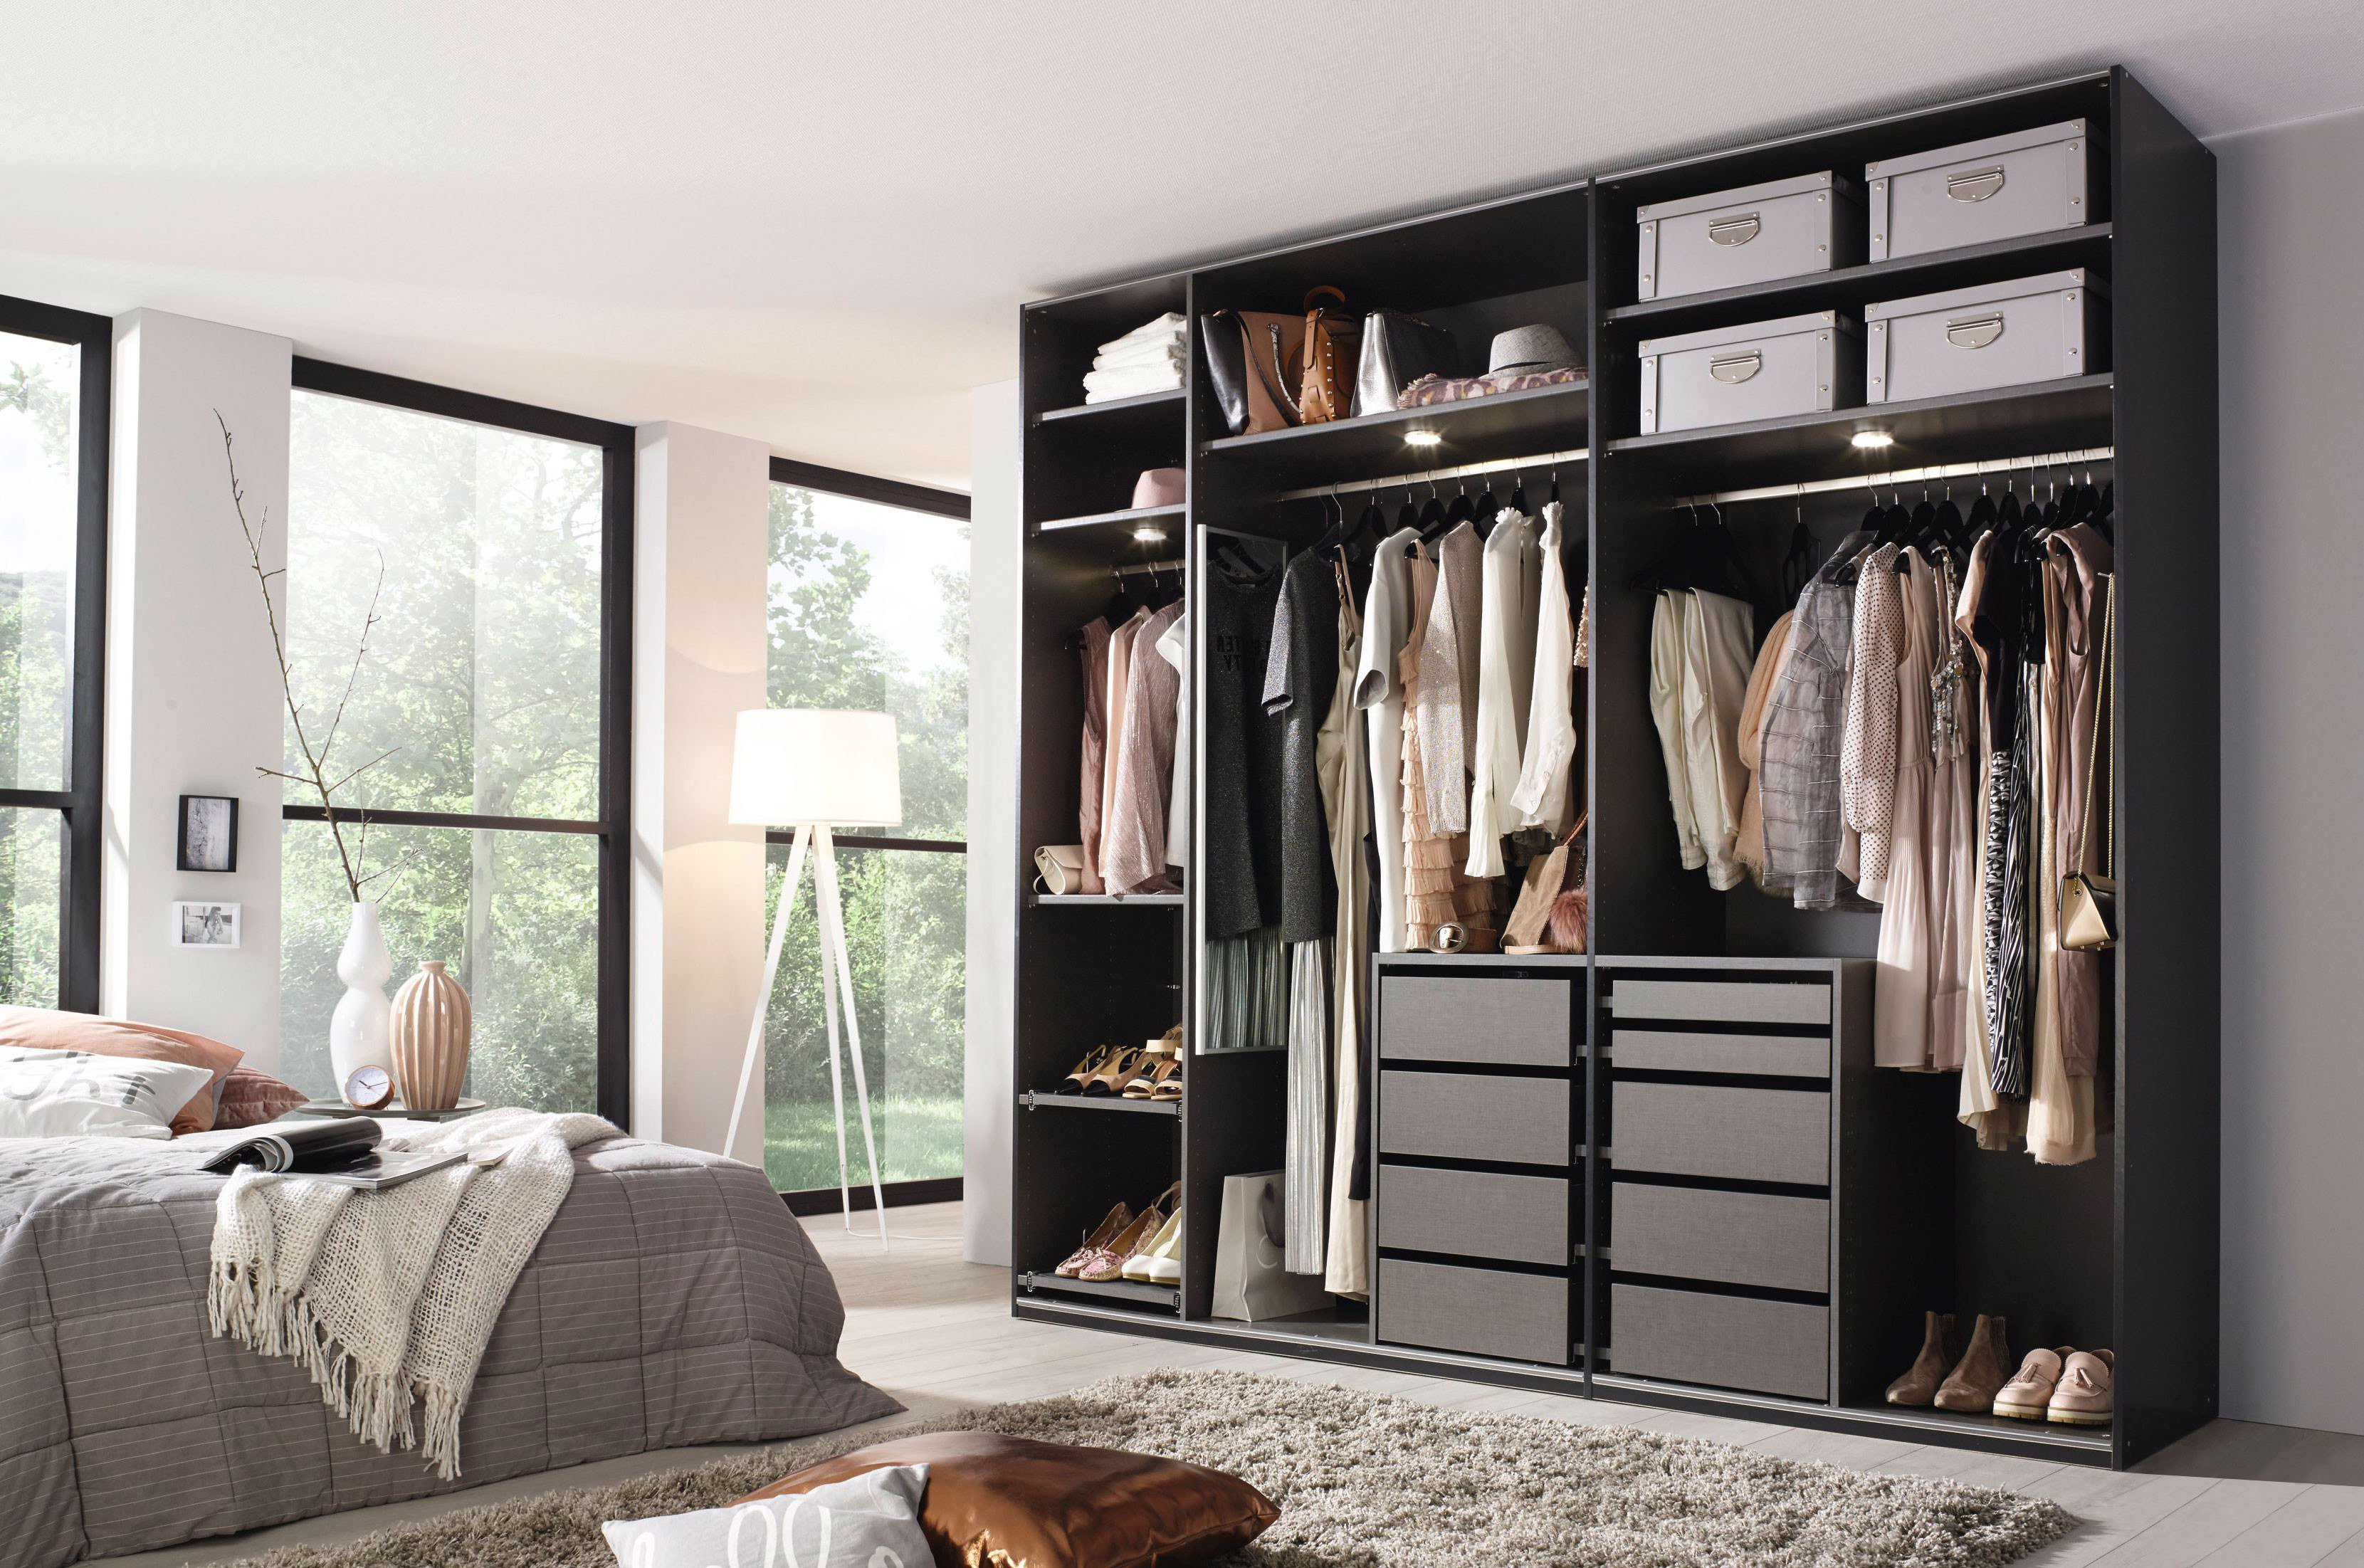 kleiderschrank system shop bestseller shop f r m bel und einrichtungen. Black Bedroom Furniture Sets. Home Design Ideas